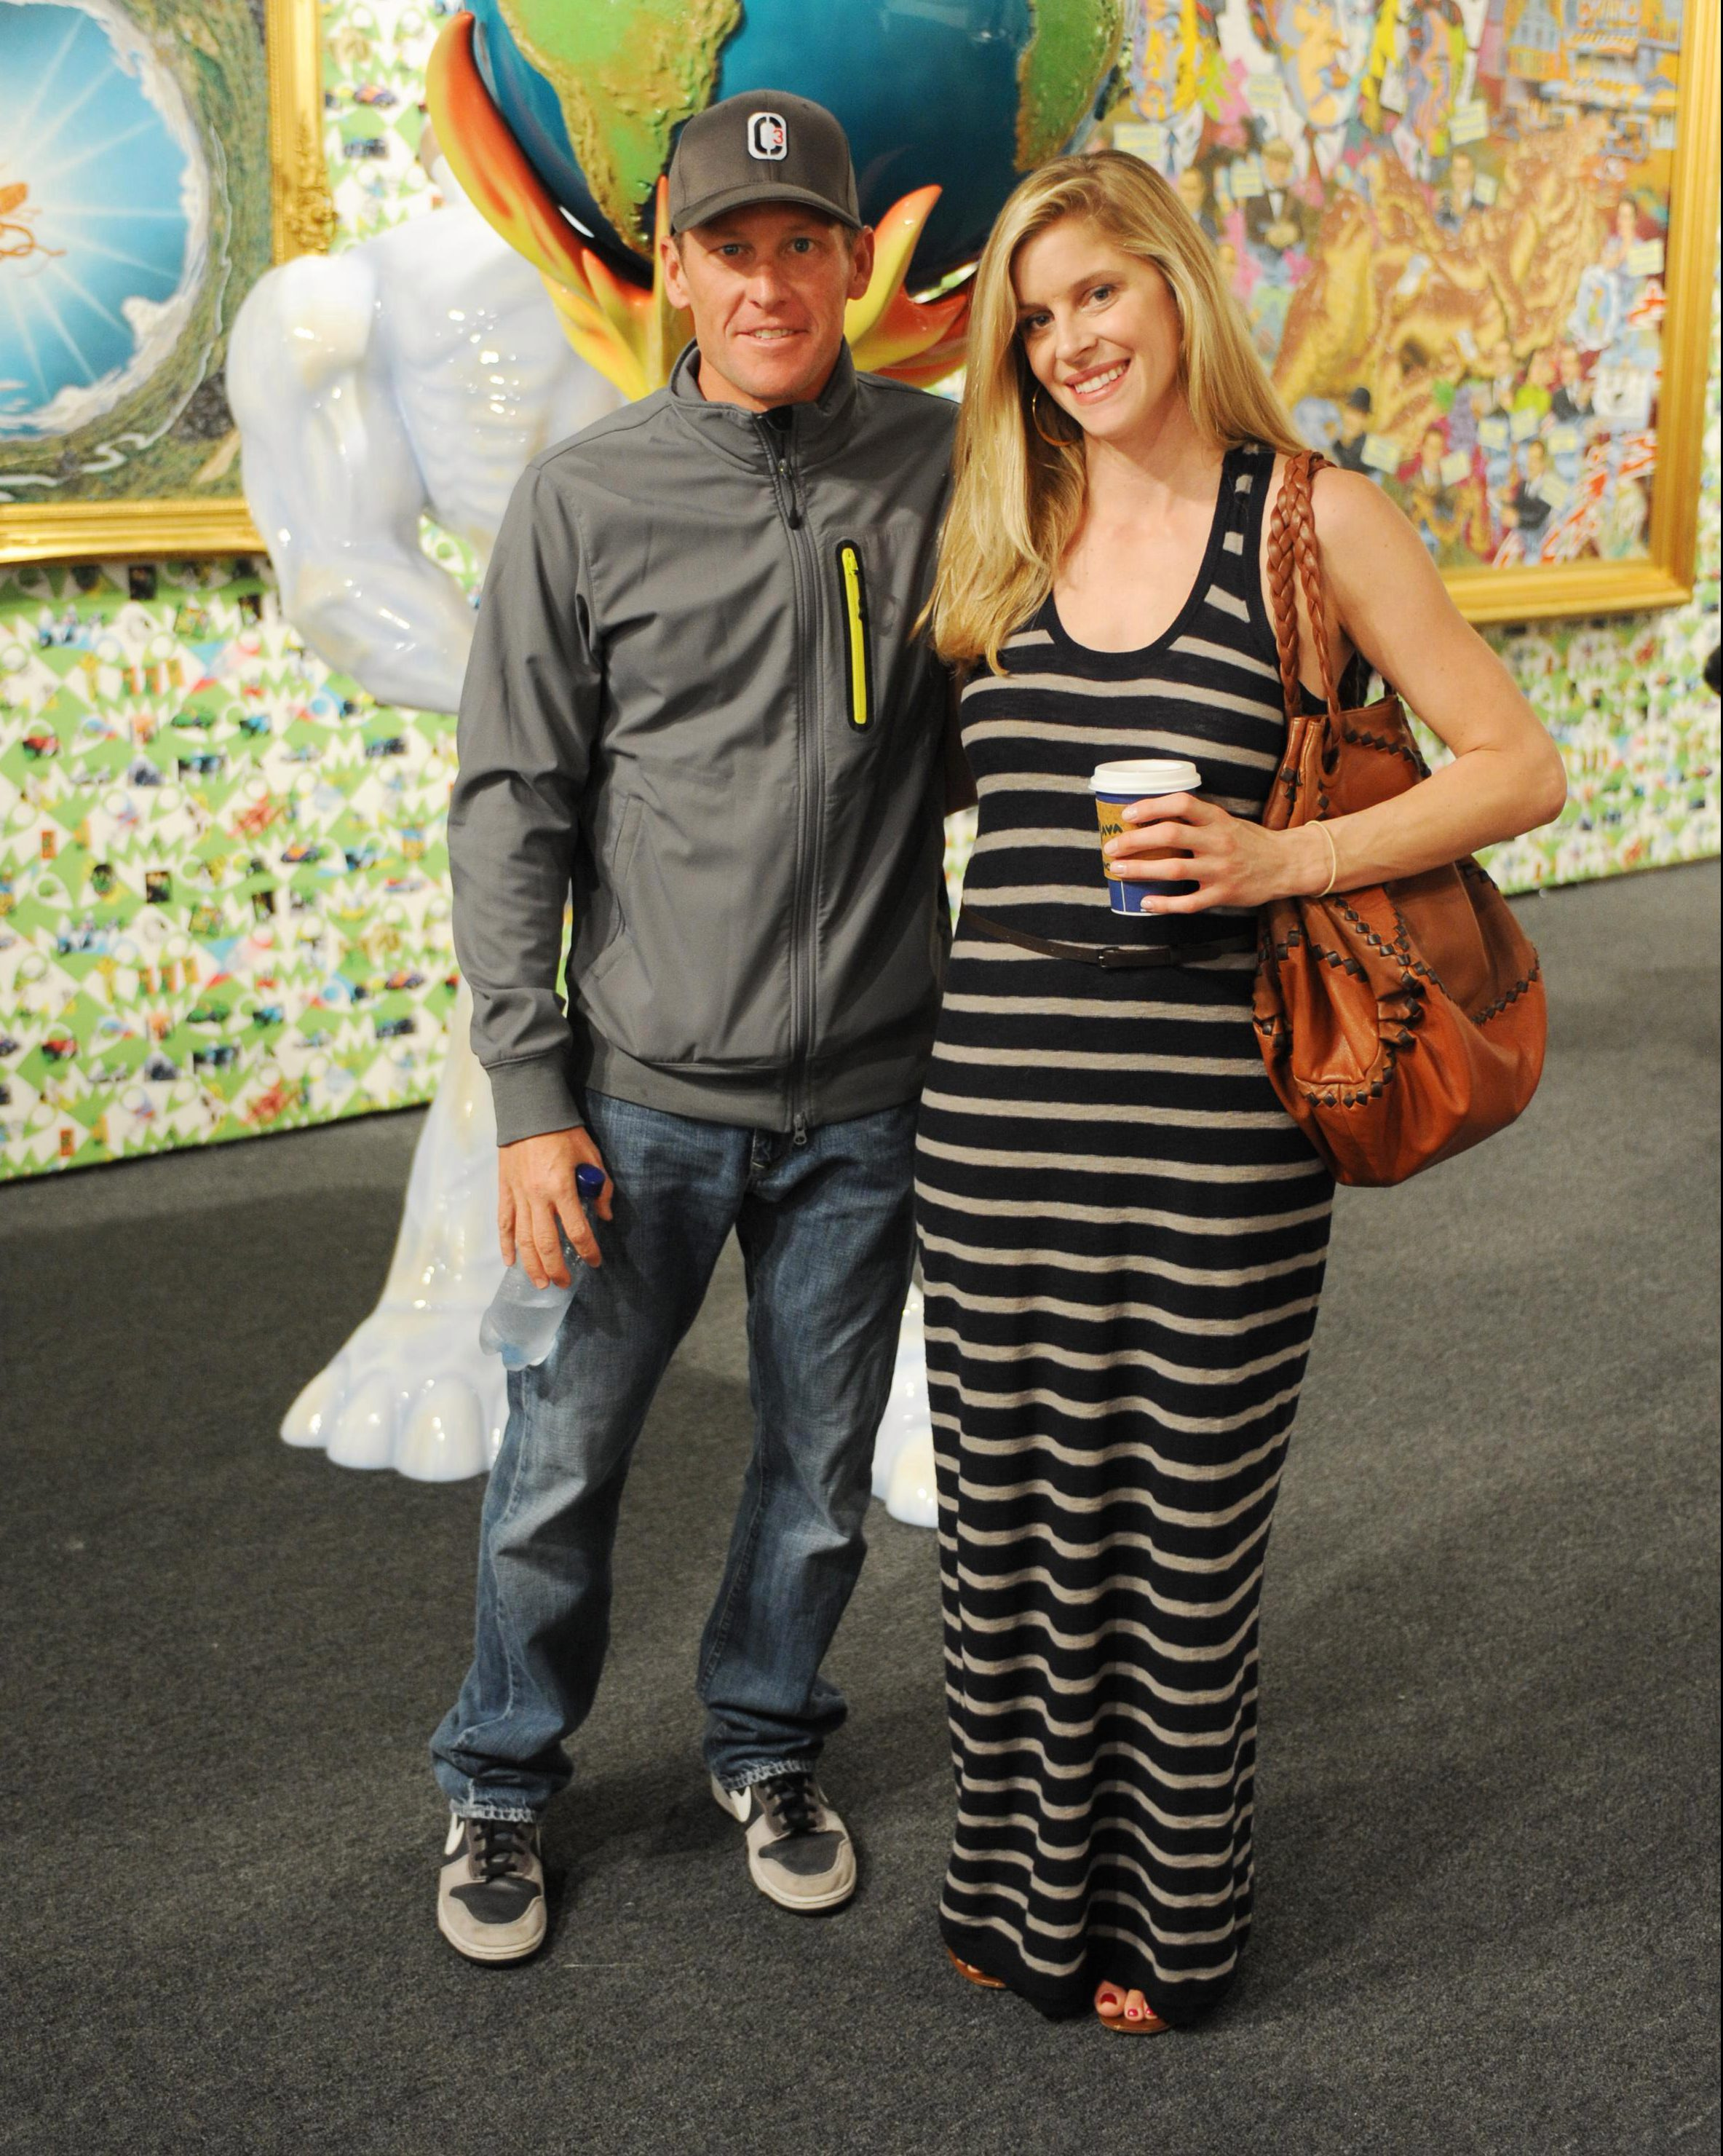 Armstrong and Anna Hansen are sighted at Art Basel Miami Beach in 2010